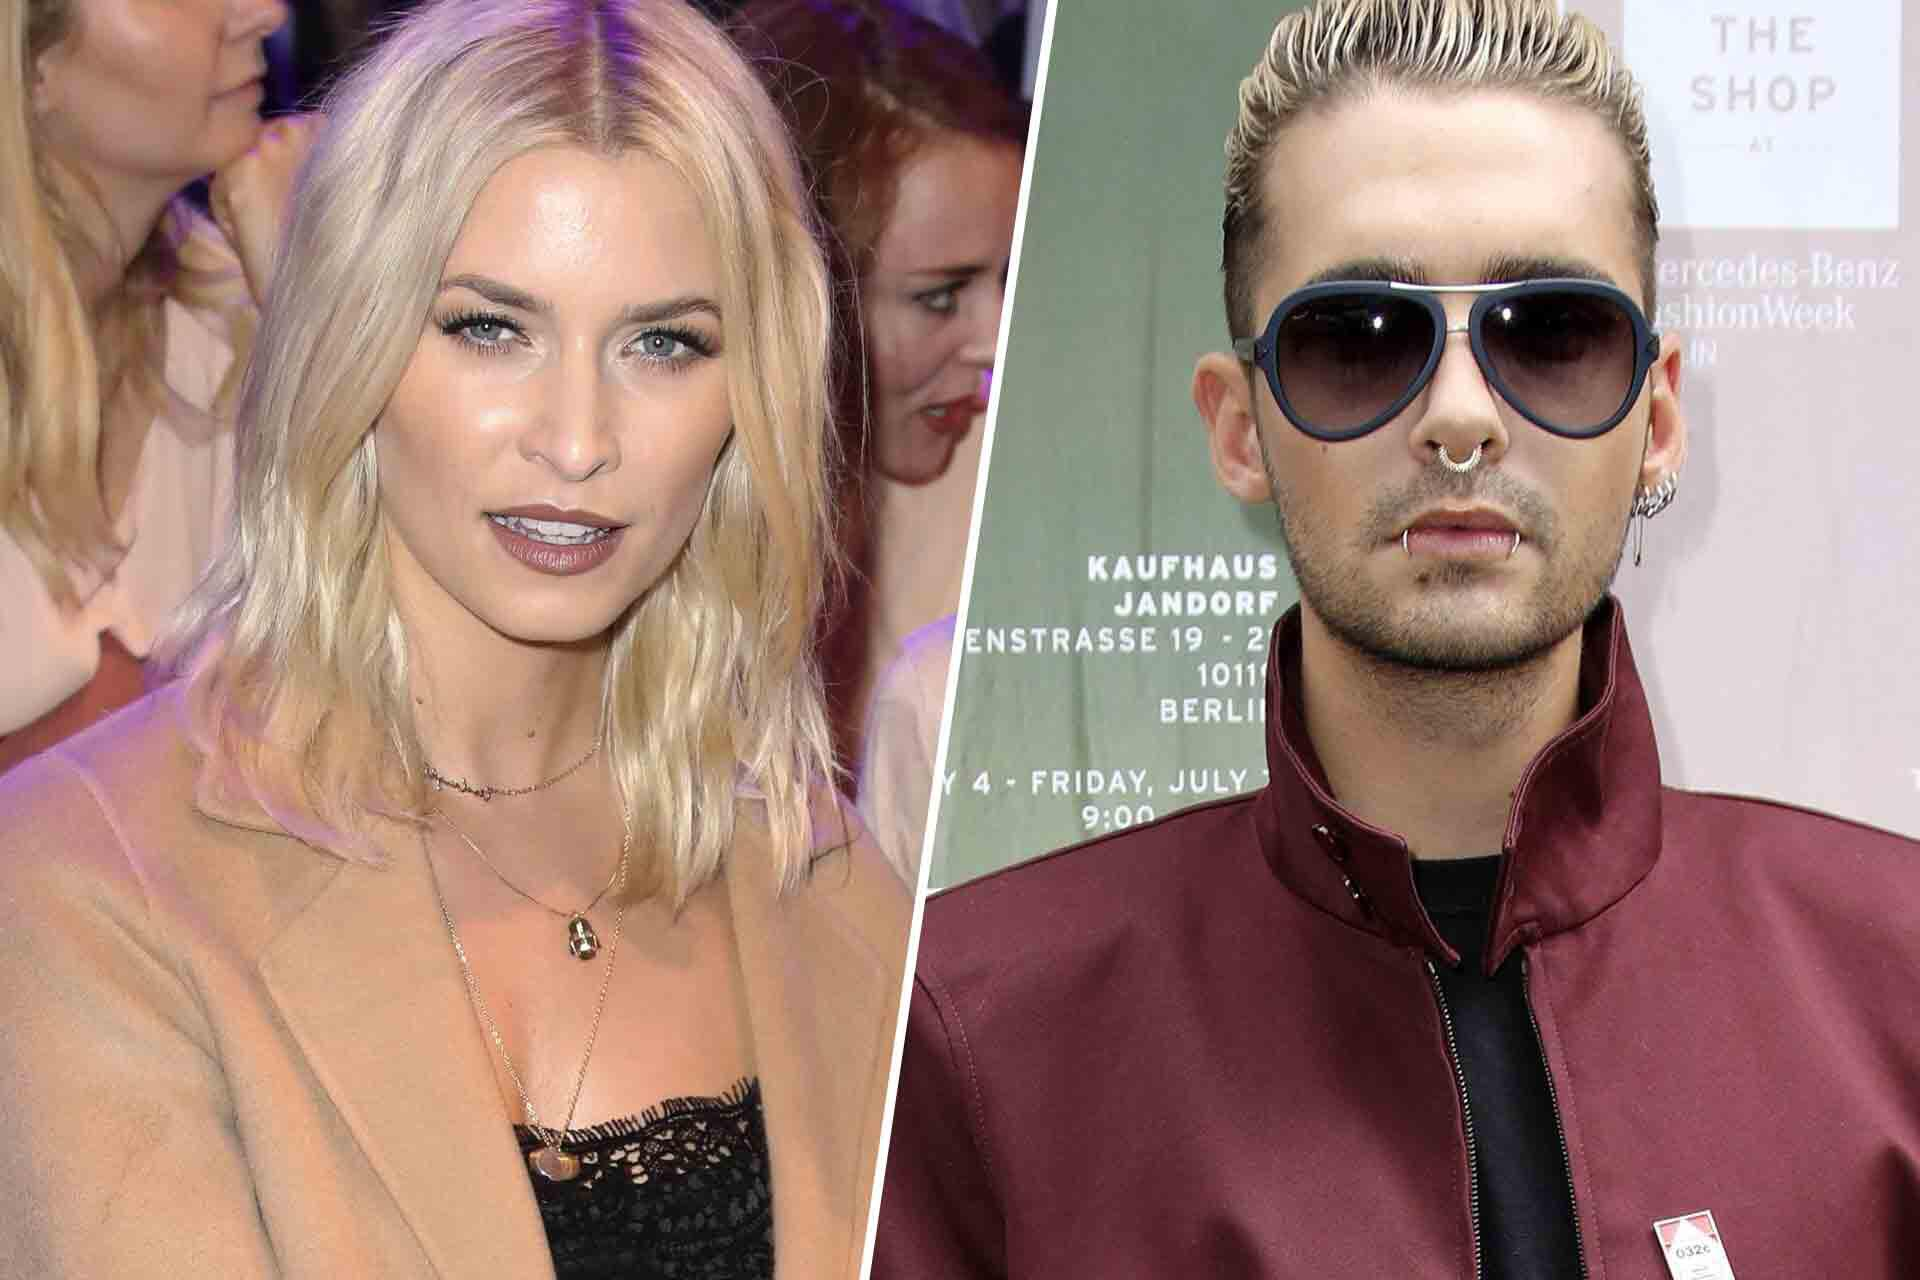 Bild zu Lena Gercke, Bill Kaulitz, Berlin, Fashion Week, 2017